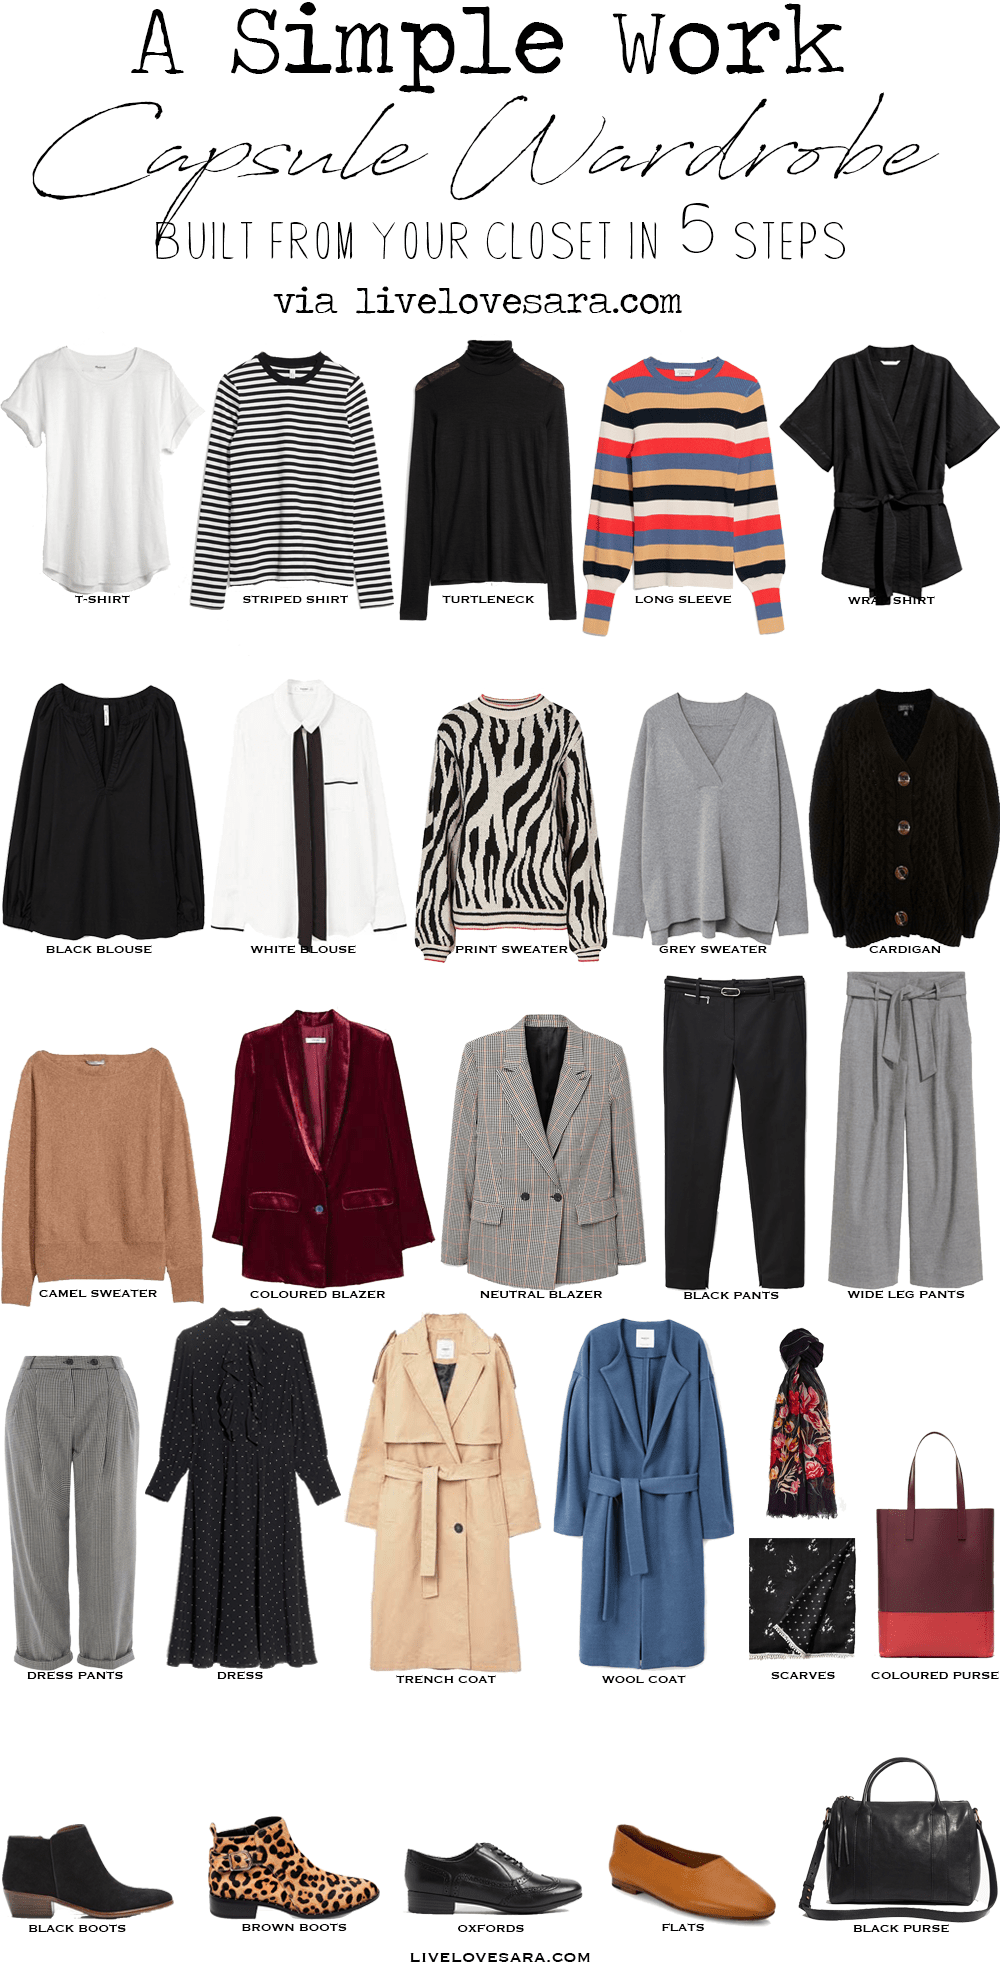 A Teacher Capsule Wardrobe Built From Your Closet